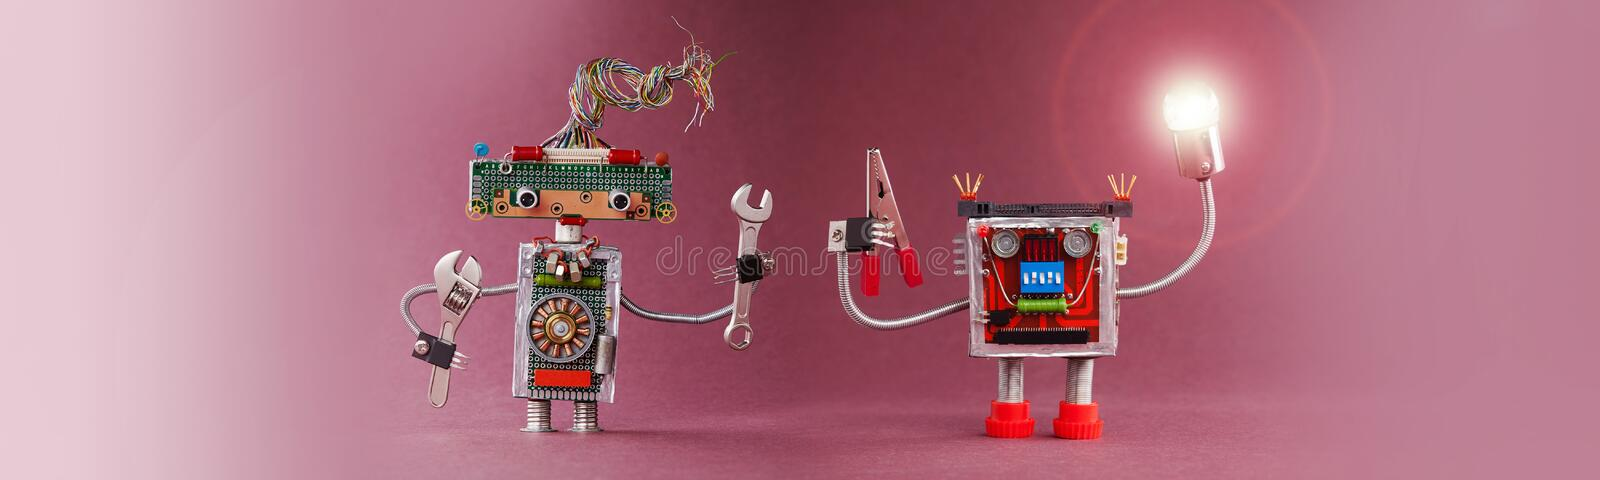 Robots 4th industrial revolution automation concept. Robotic handyman lights the way. Friendly mechanic toys with lamp. Red pliers hand wrench. Pink violet stock image